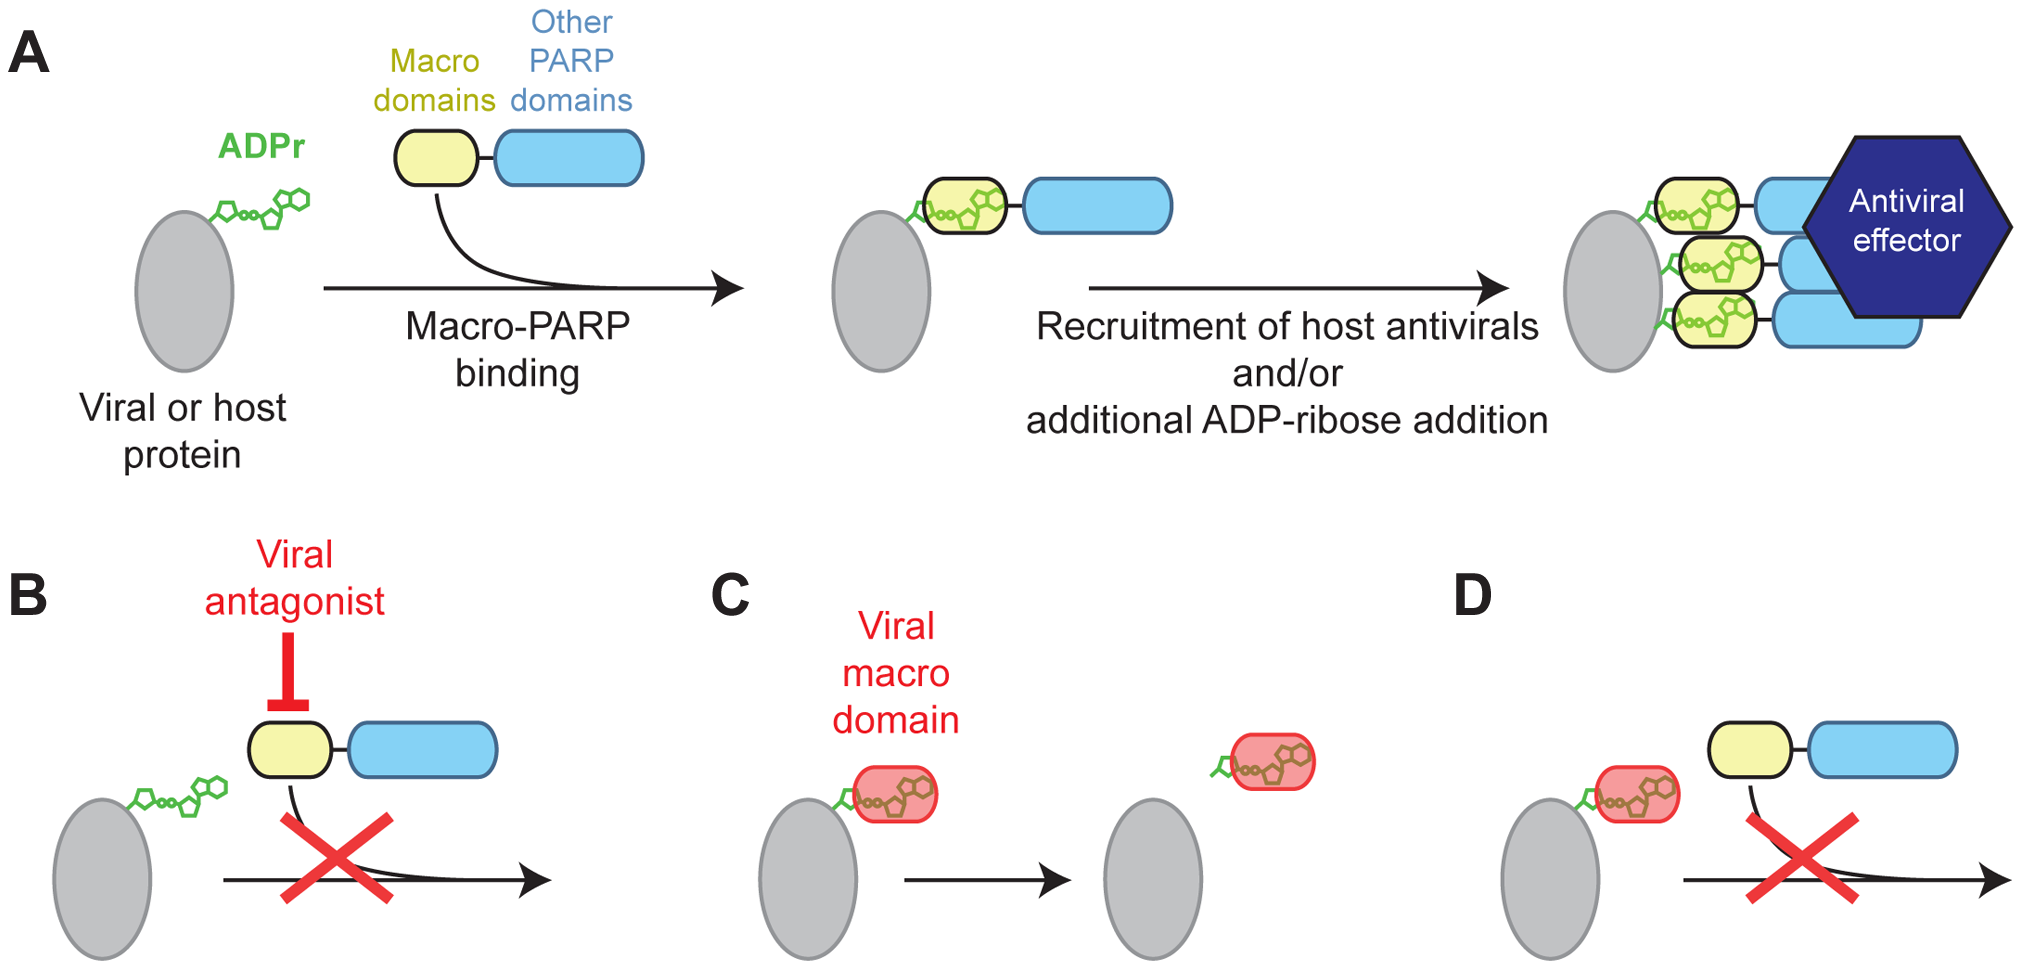 Model for genetic conflict involving PARP macrodomains.